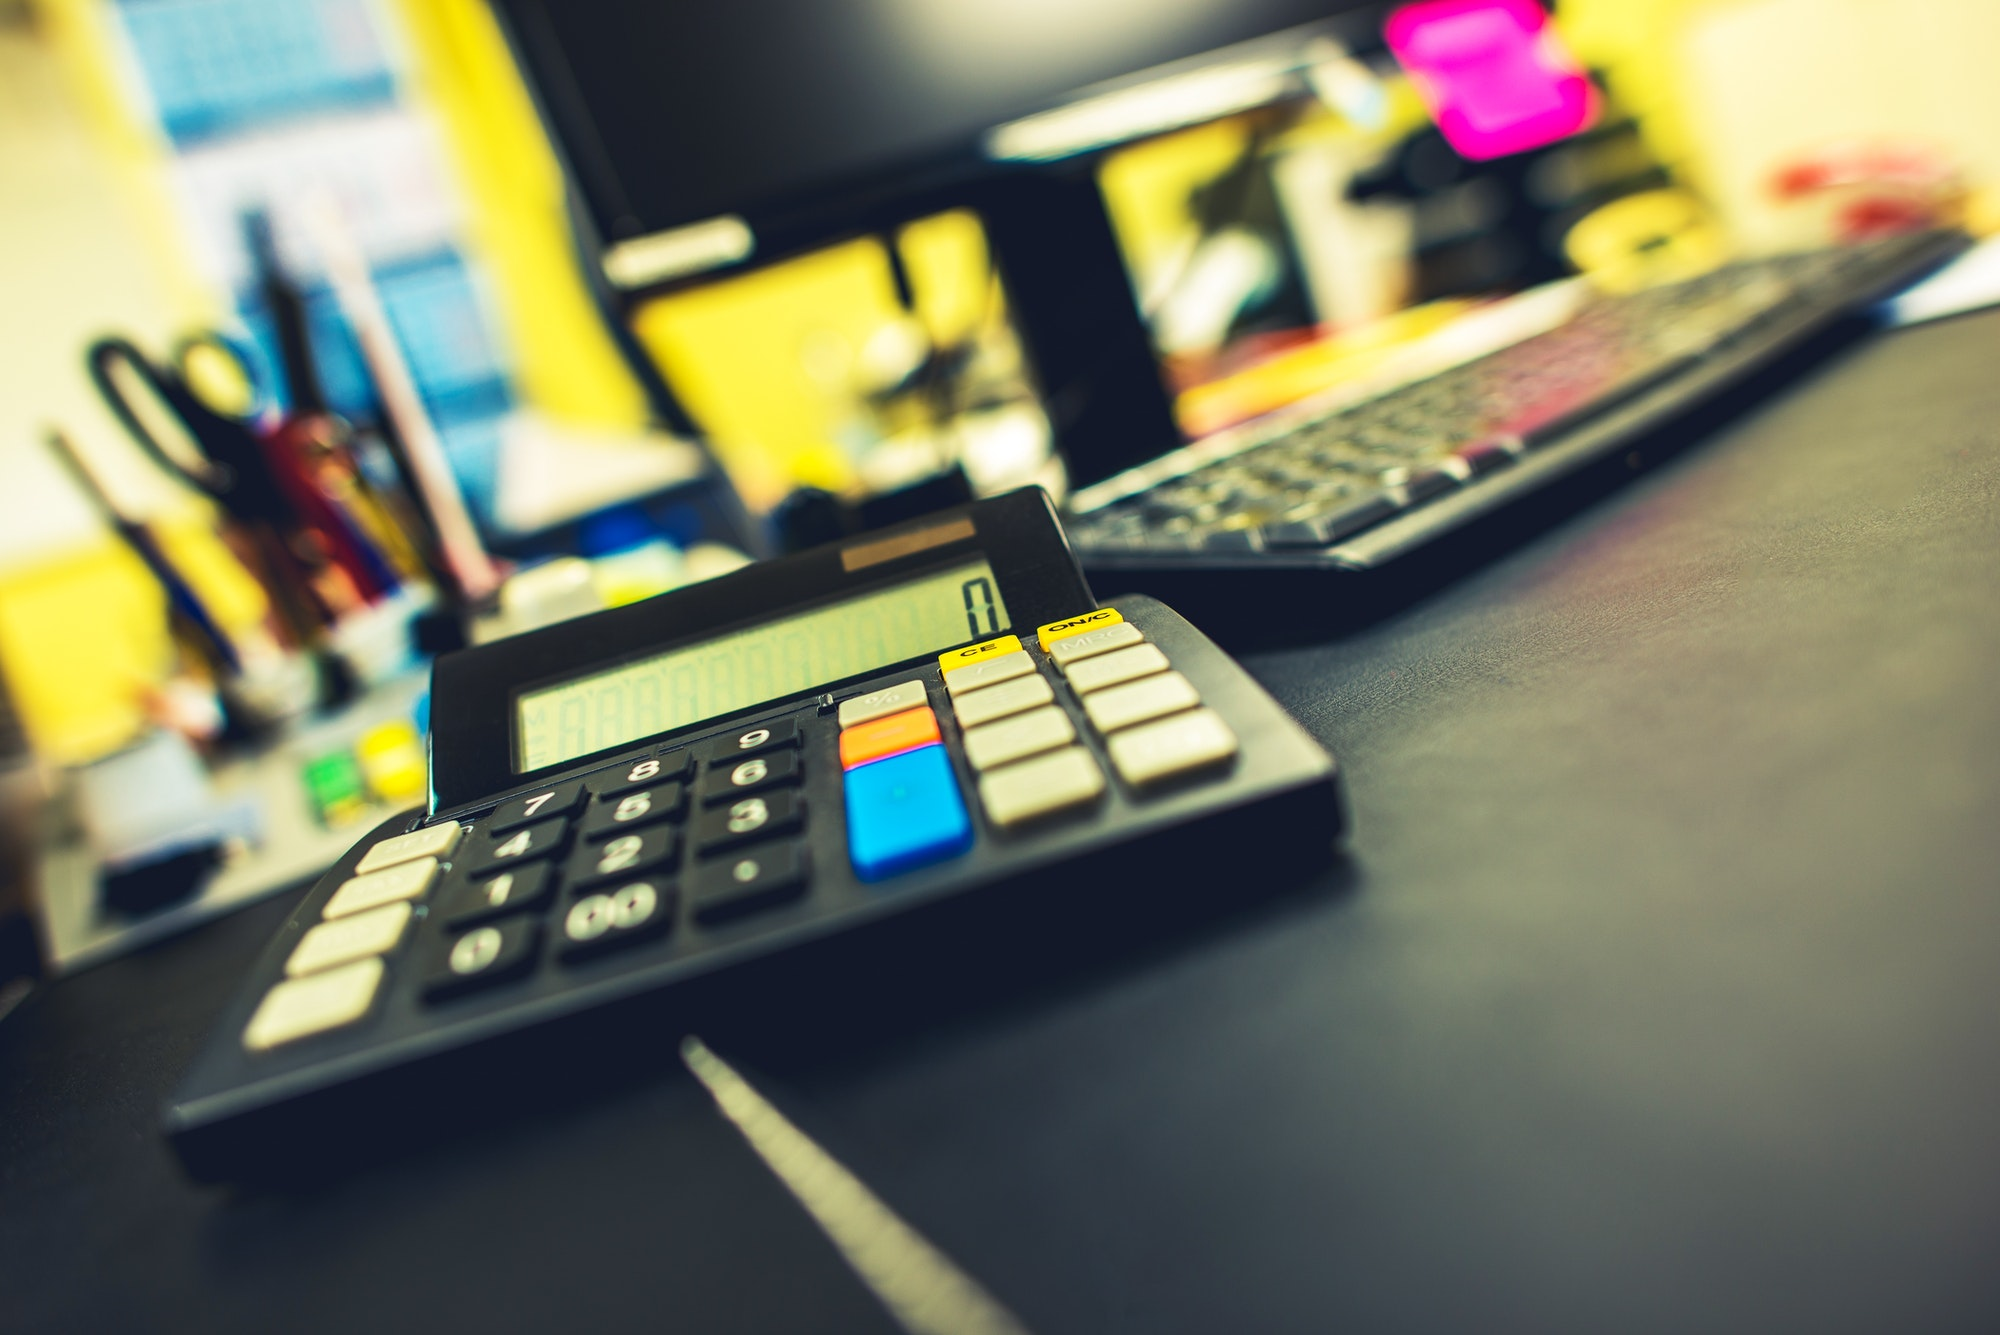 Office and Accounting Concept